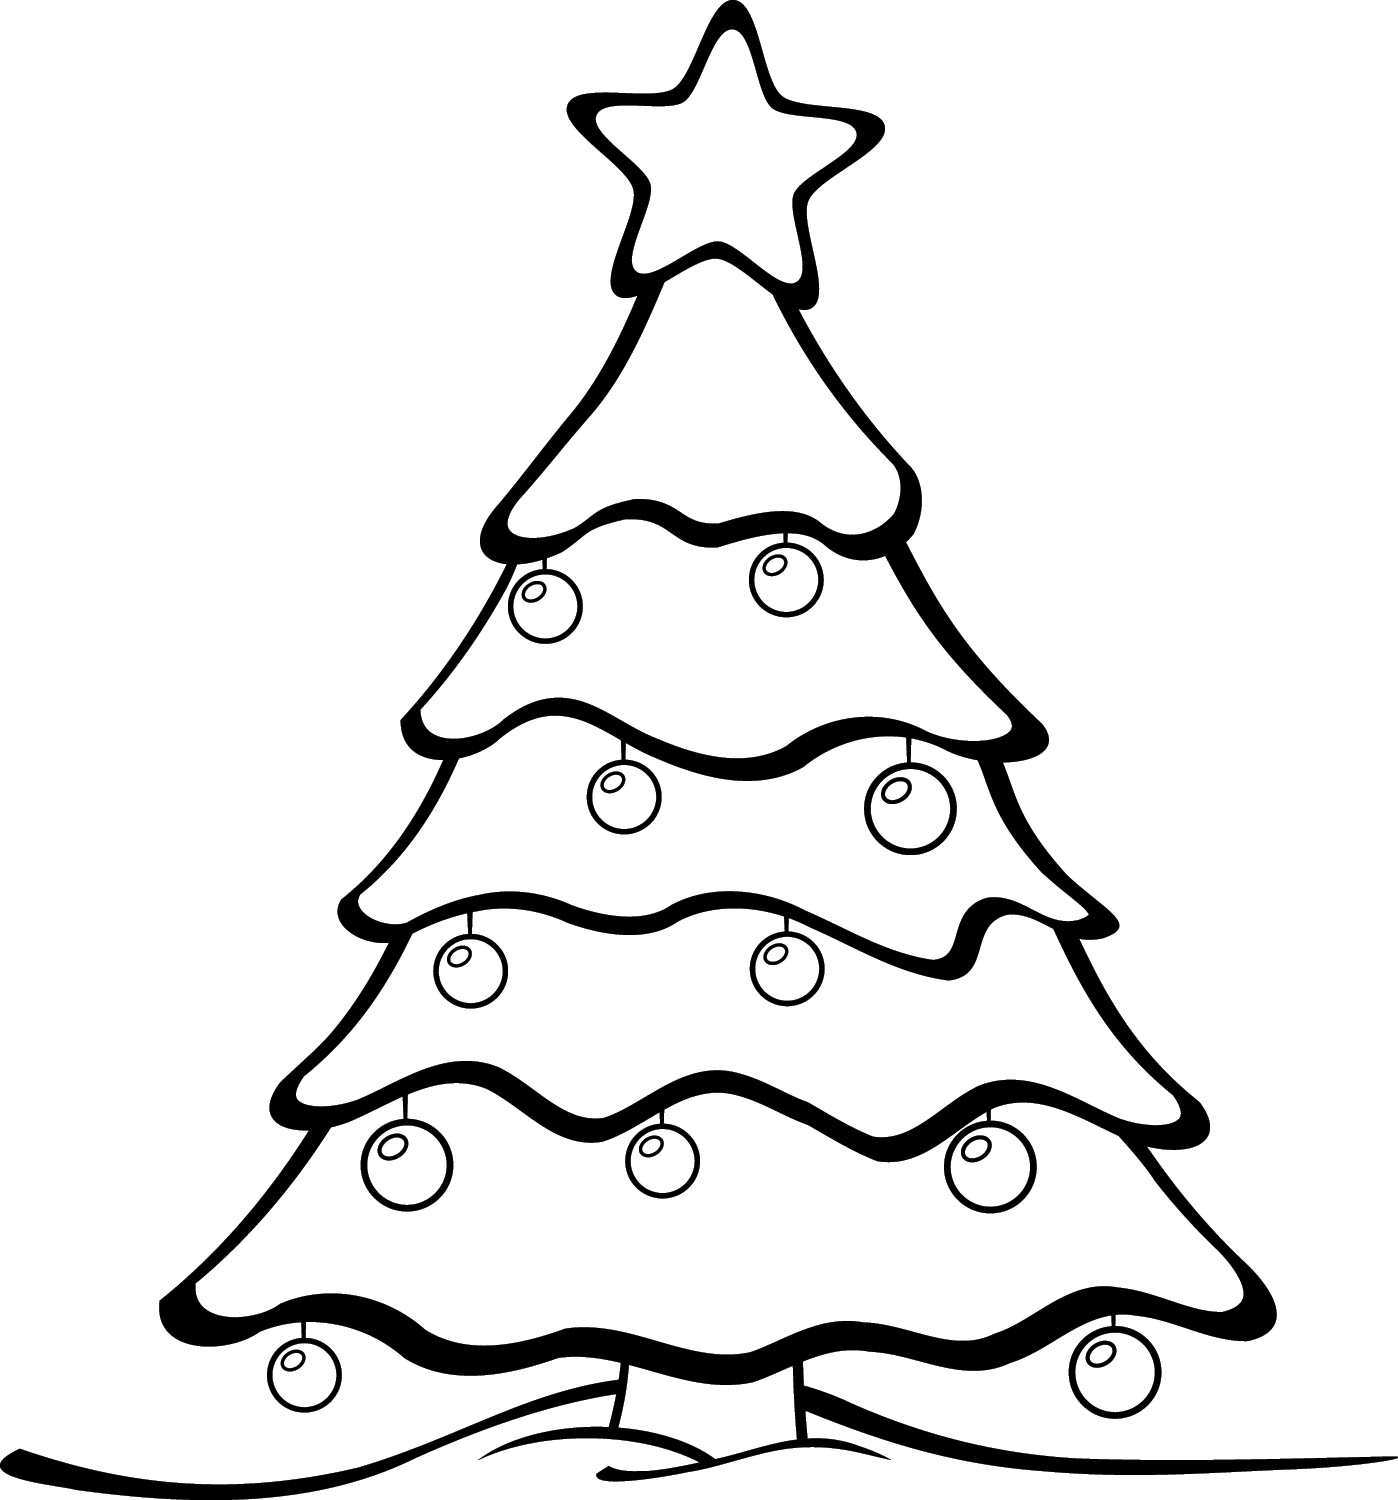 Christmas Tree Simple Drawing At Getdrawings Com Free For